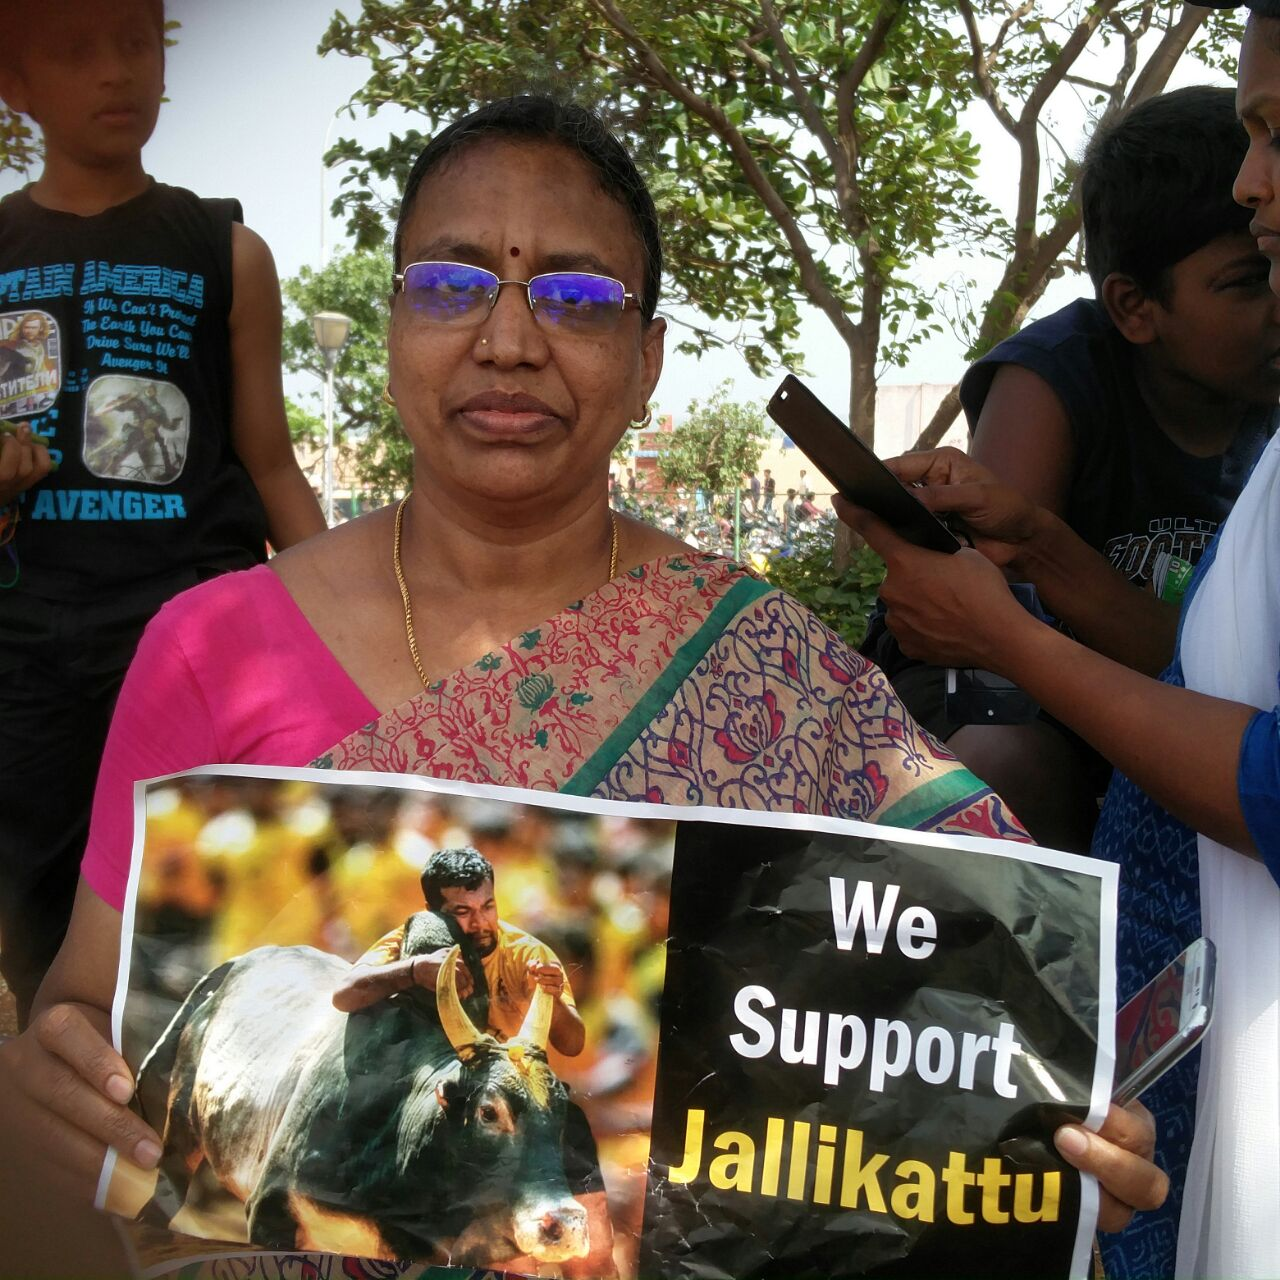 R Shanti holds up a sign in support of jallikattu.